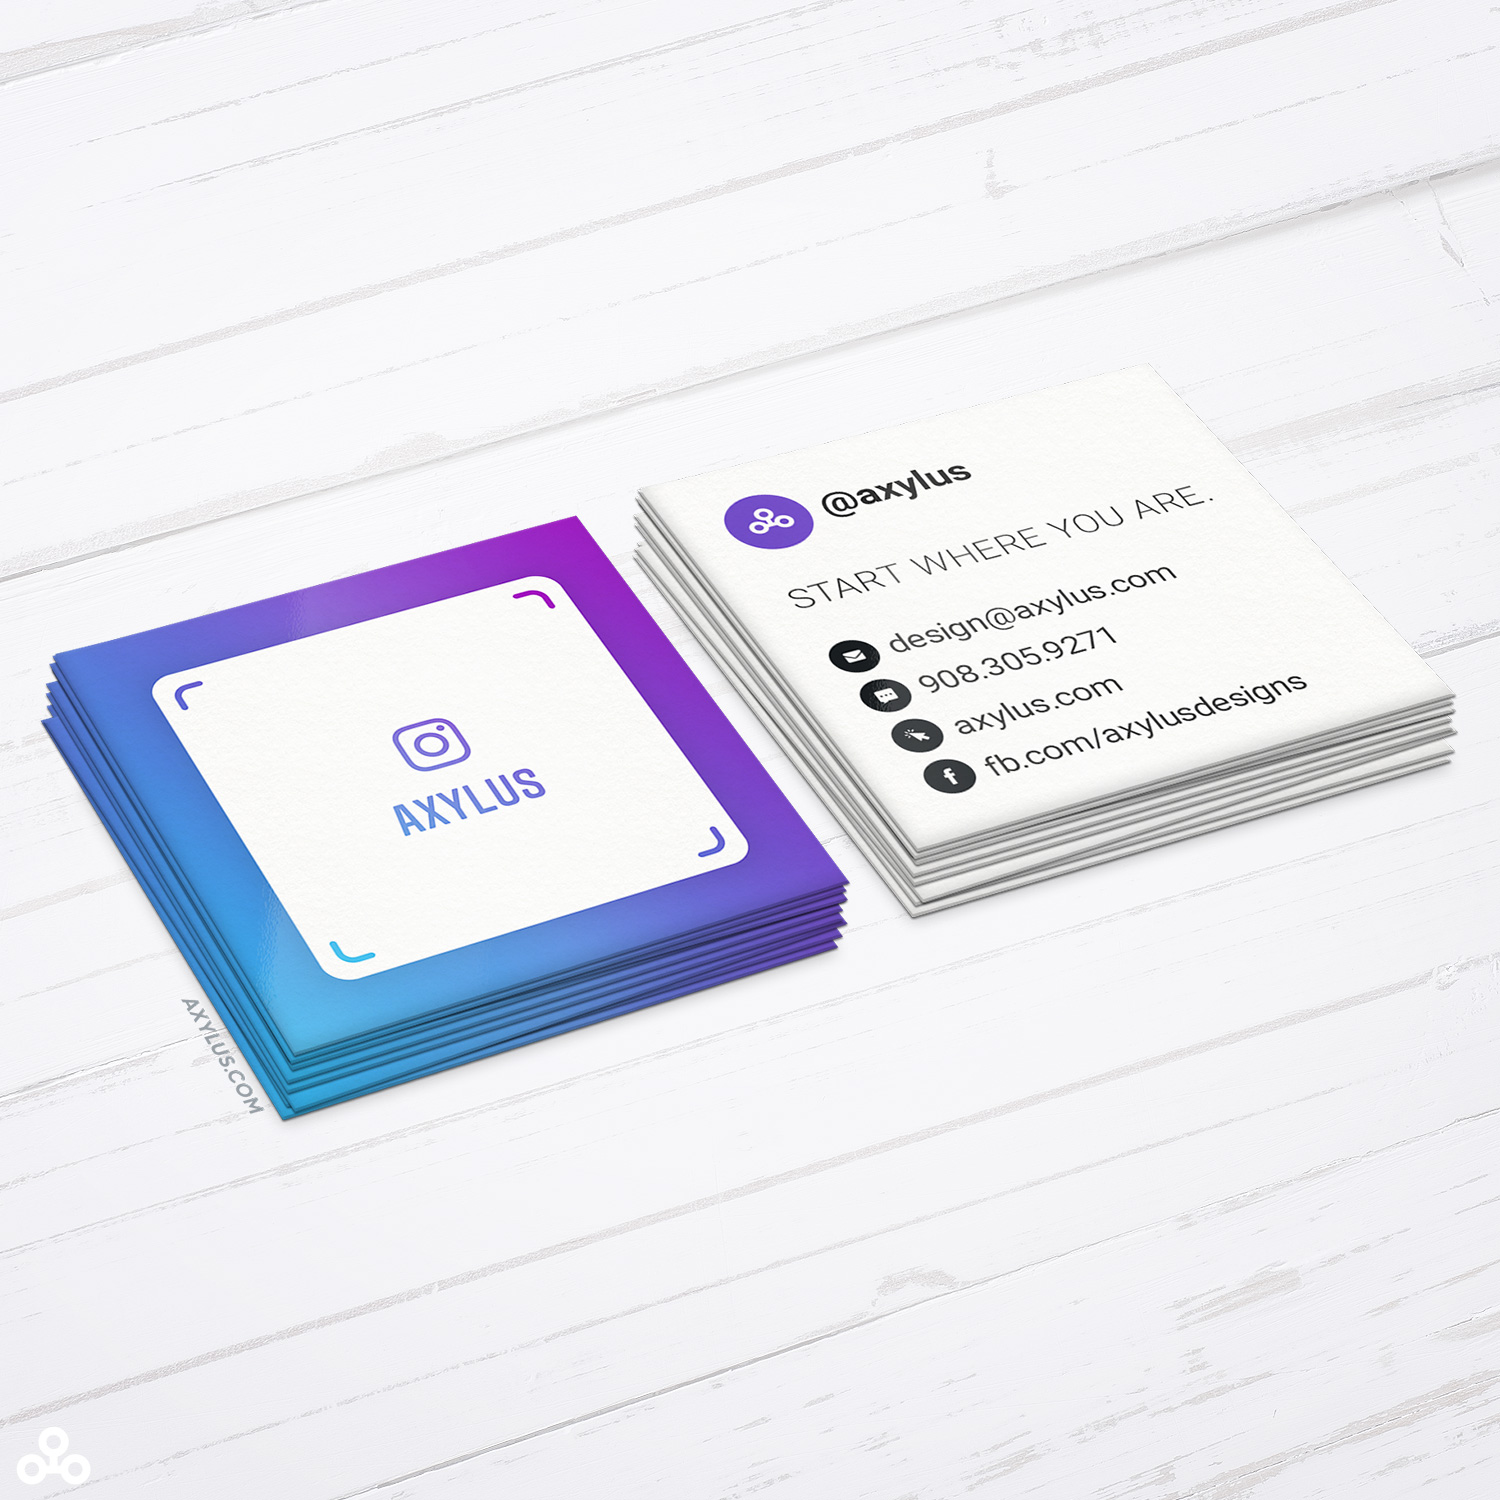 Mini IG Nametag Business Cards • Social Media Marketing • 2x2 Inches